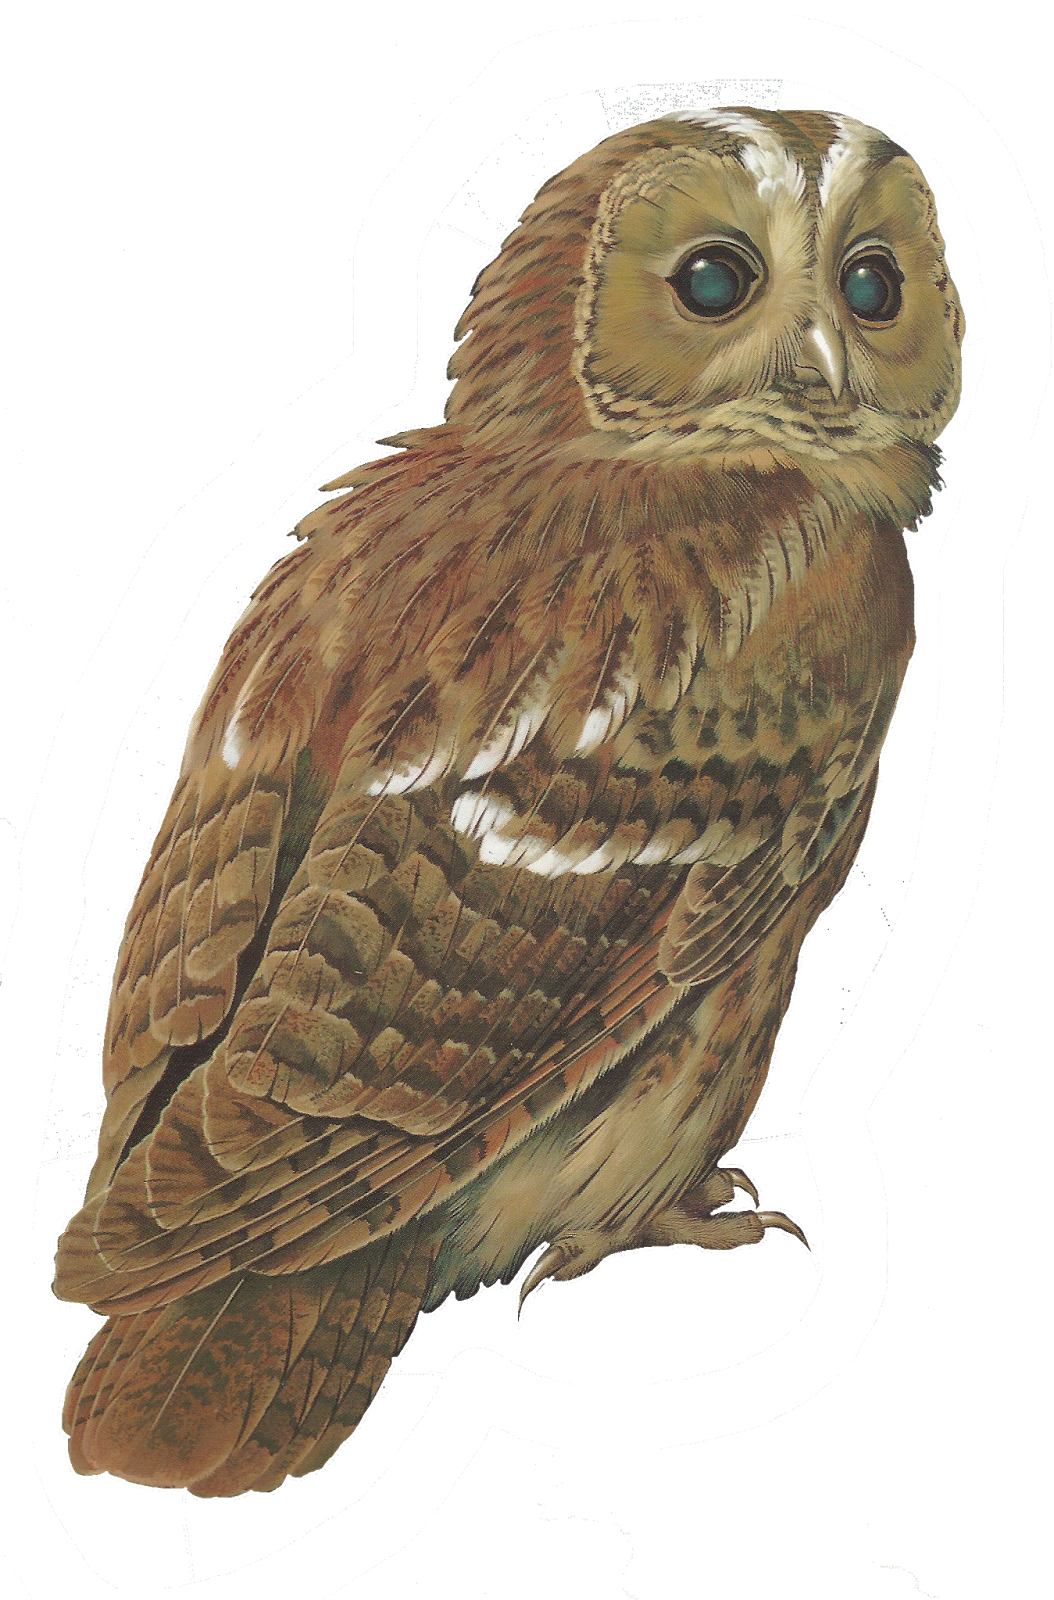 Tawny owl clipart 20 free Cliparts | Download images on ...